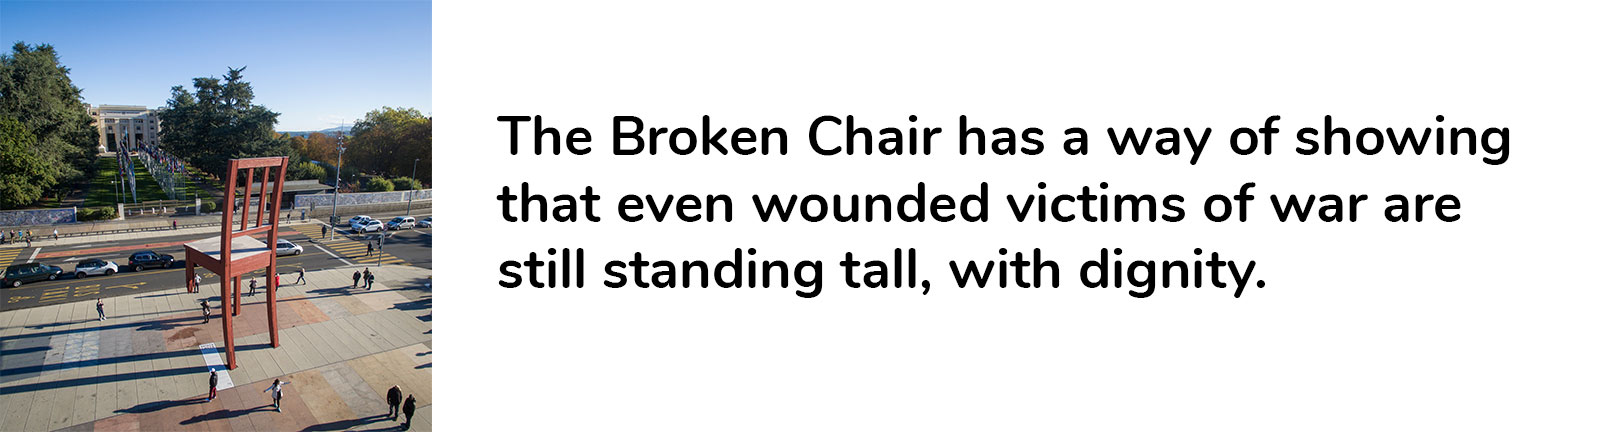 Photo of Broken Chair on left, text on right – The Broken Chair has a way of showing that even wounded victims of war are still standing tall, with dignity.